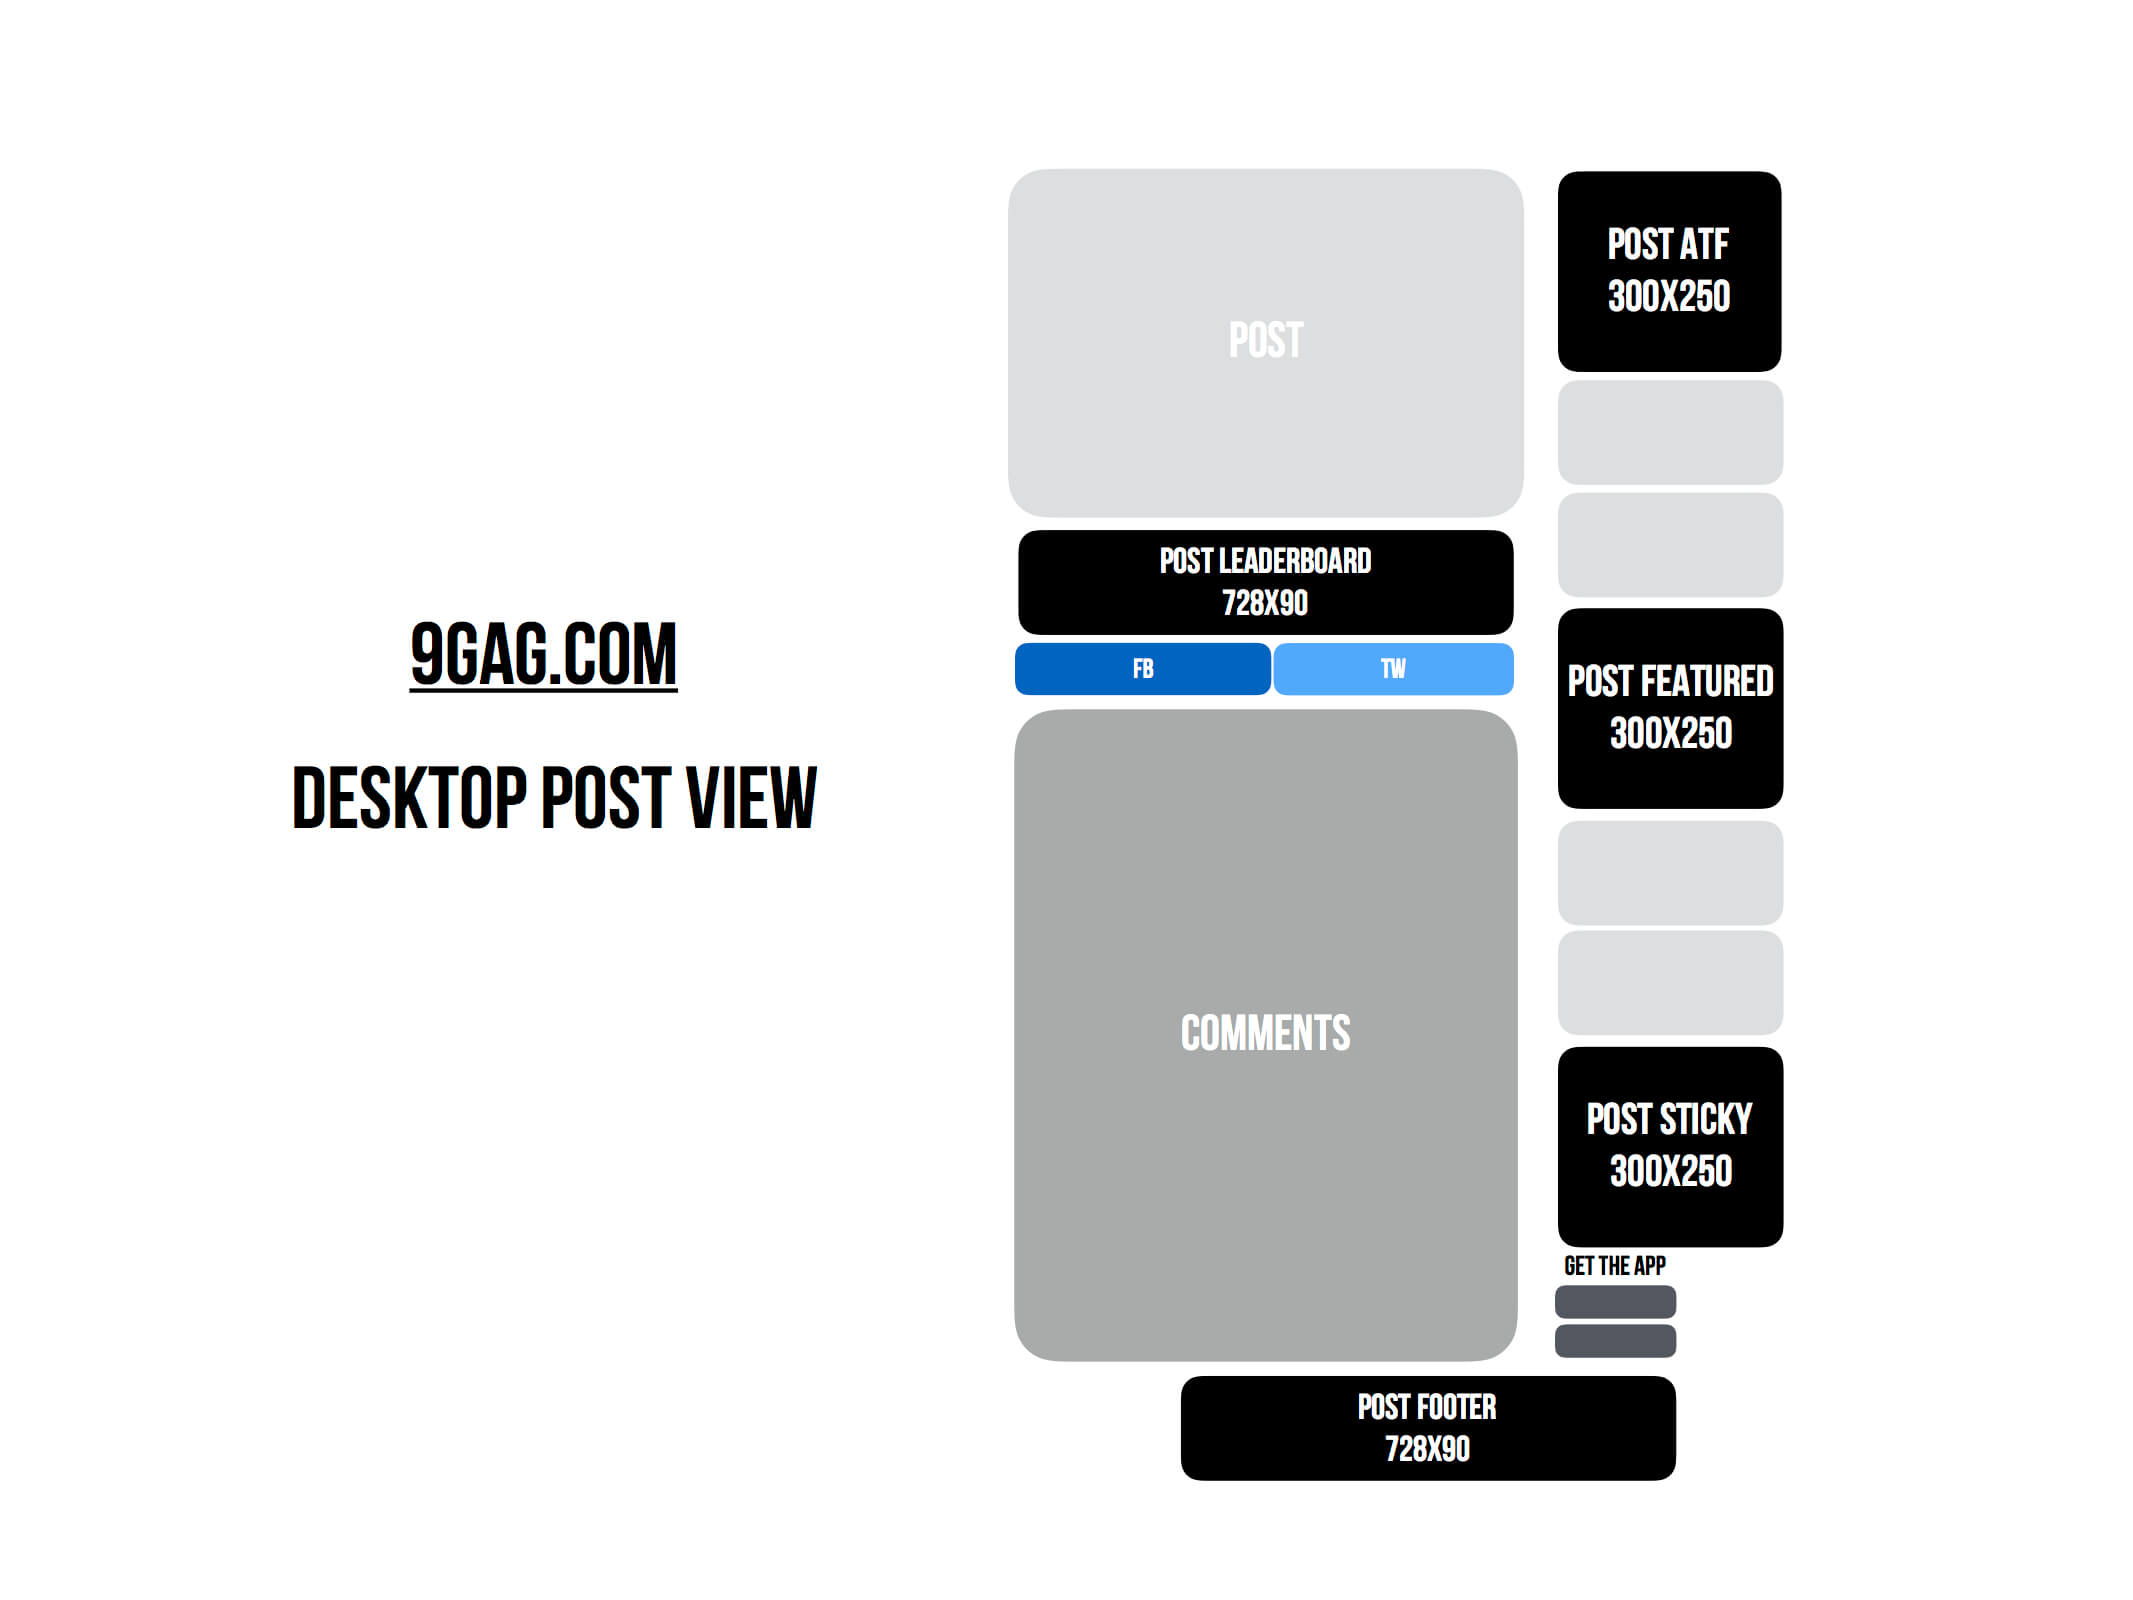 Ad Specifications